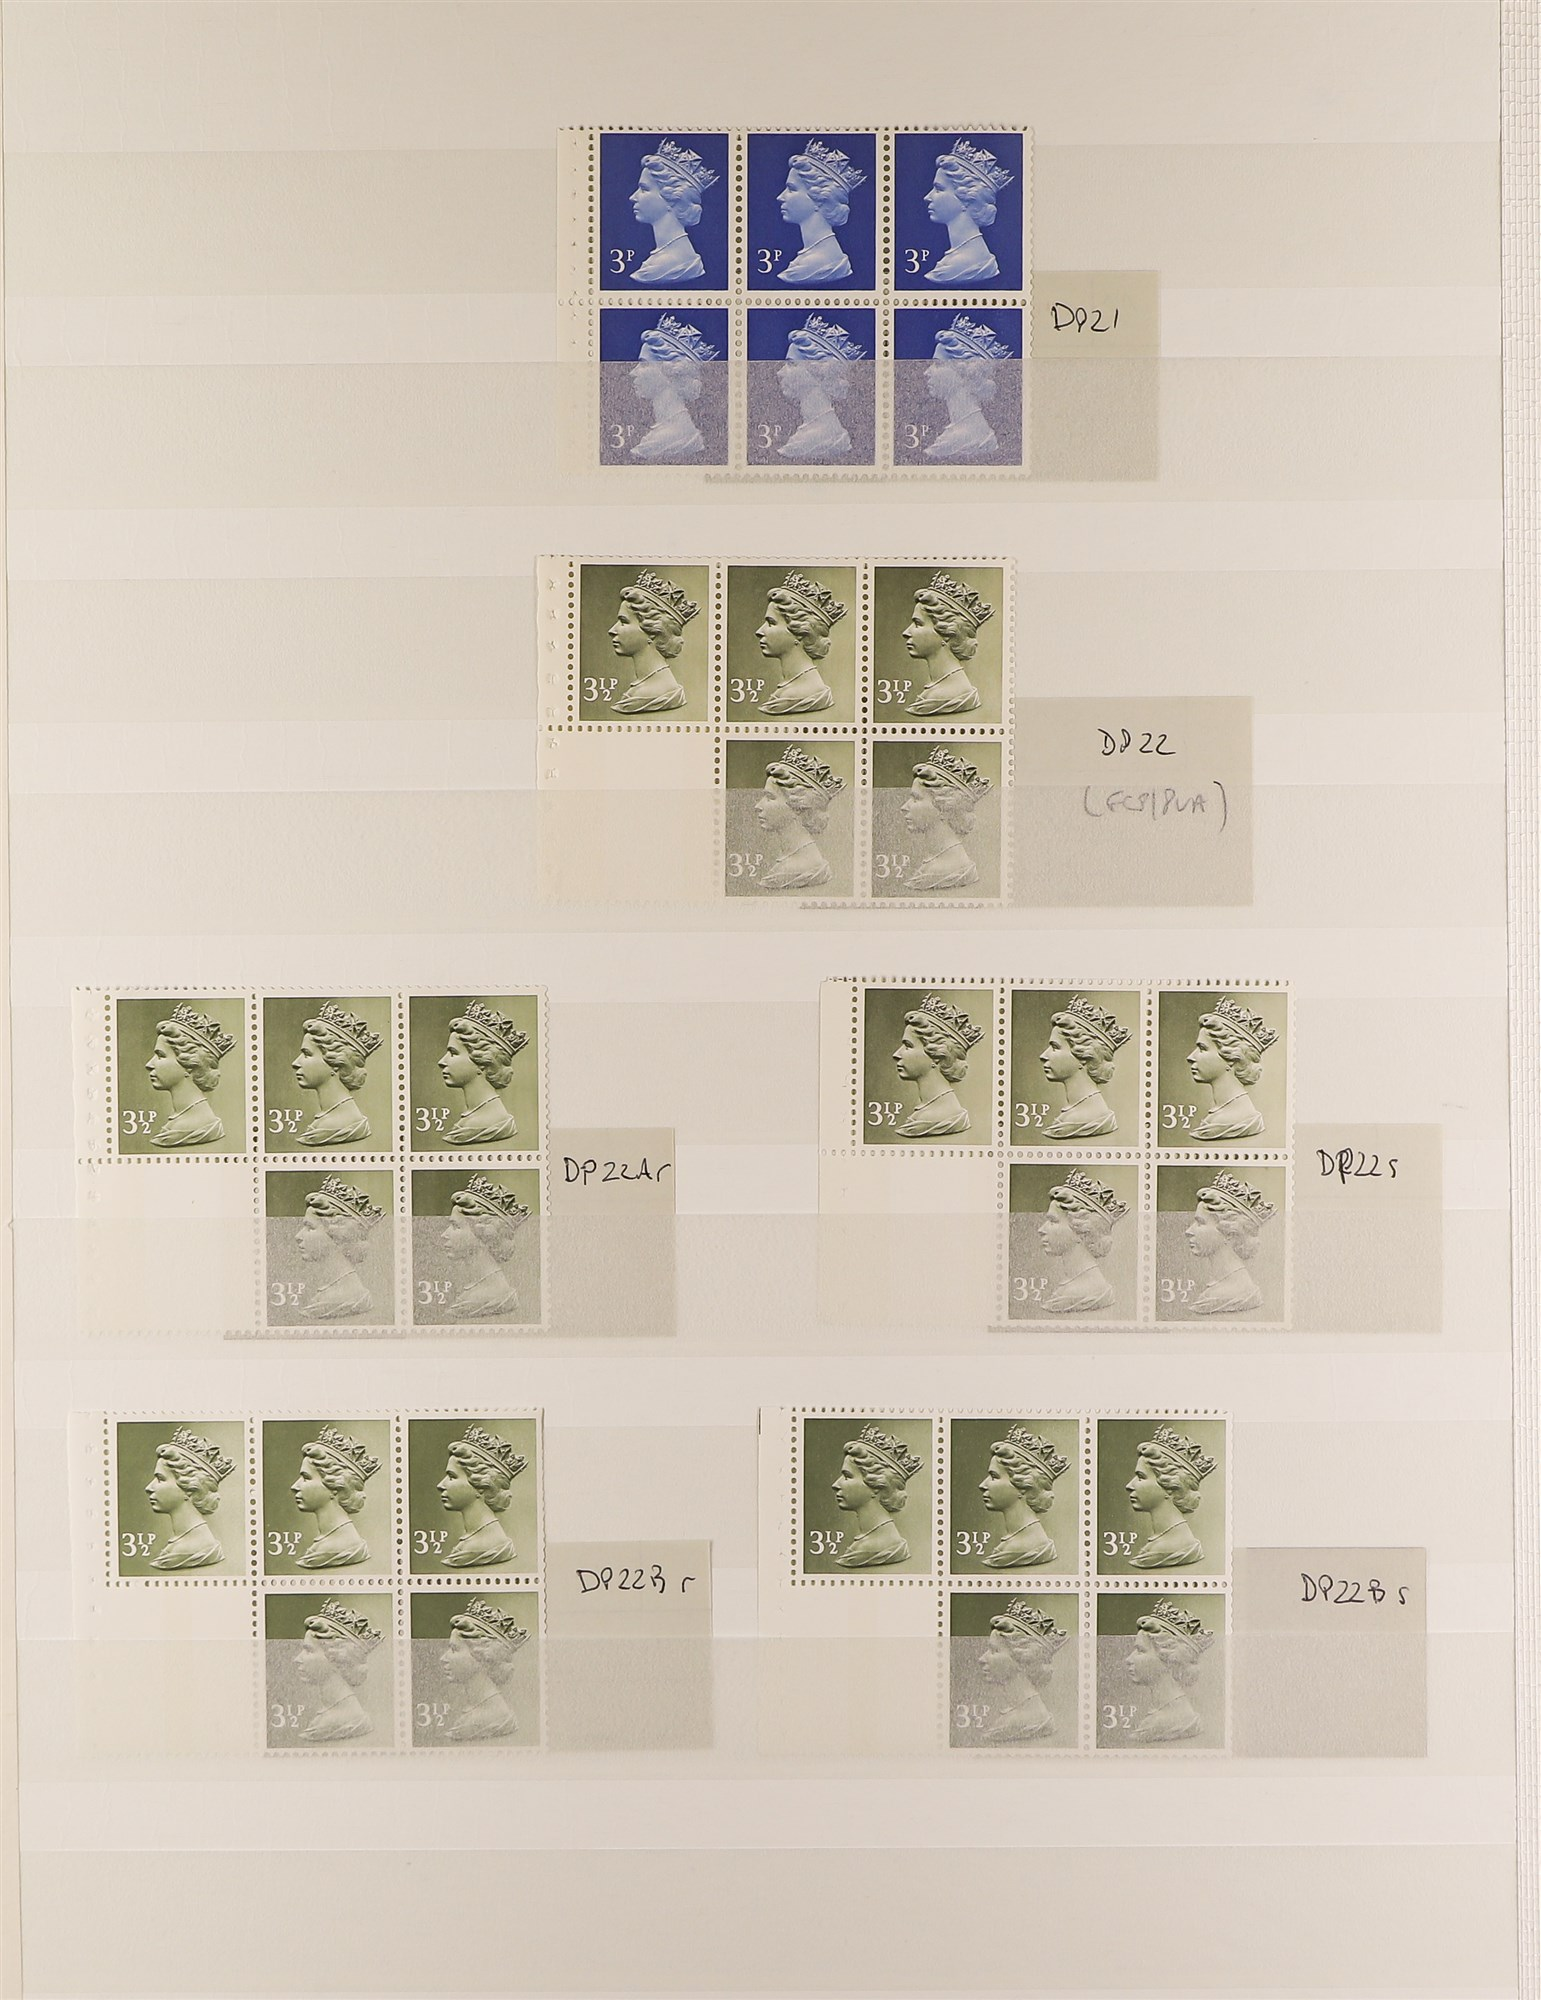 GB.ELIZABETH II MACHIN STITCHED BOOKLET PANES all different and with generally good perfs. (48 - Image 2 of 4